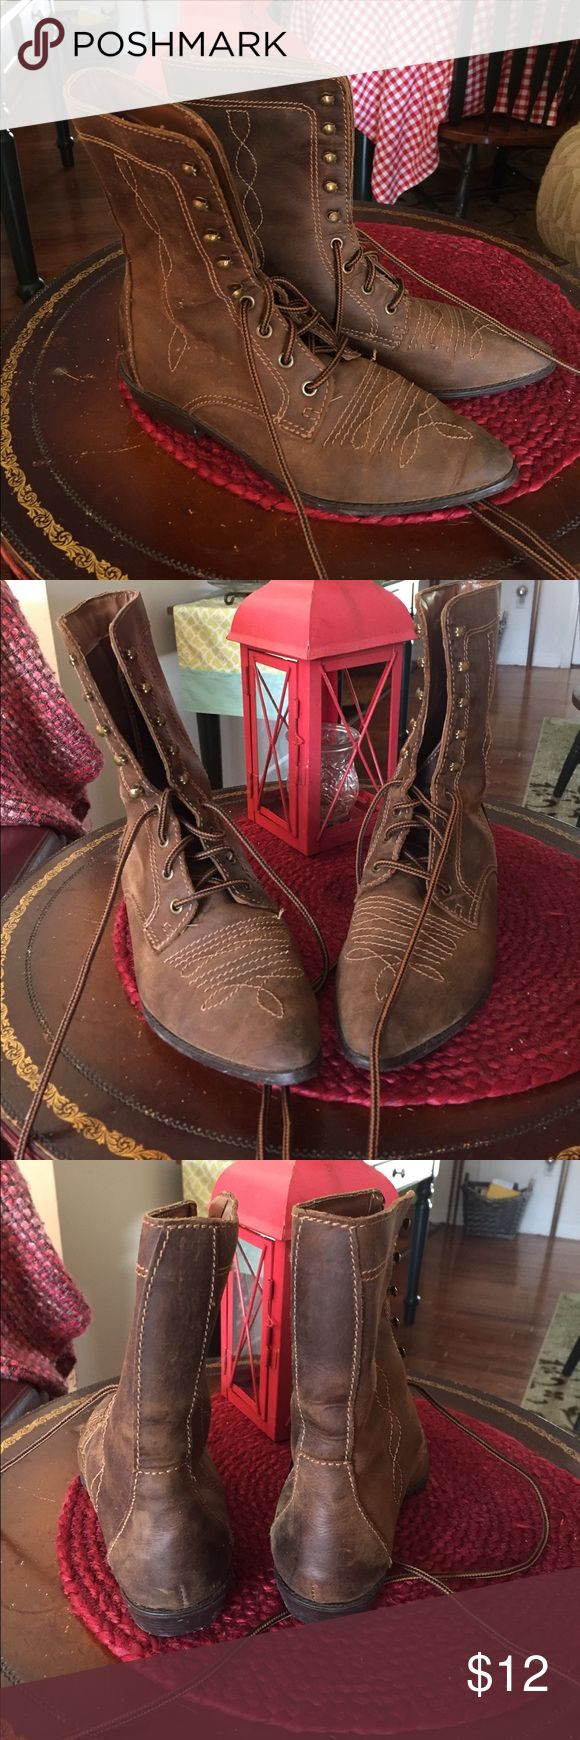 Brown Ankle Boots Great condition, leather upper. Made in Brazil. The brand is illegible... possibly from a store like Charlotte Russe, Wet Seal??? Shoes Ankle Boots & Booties